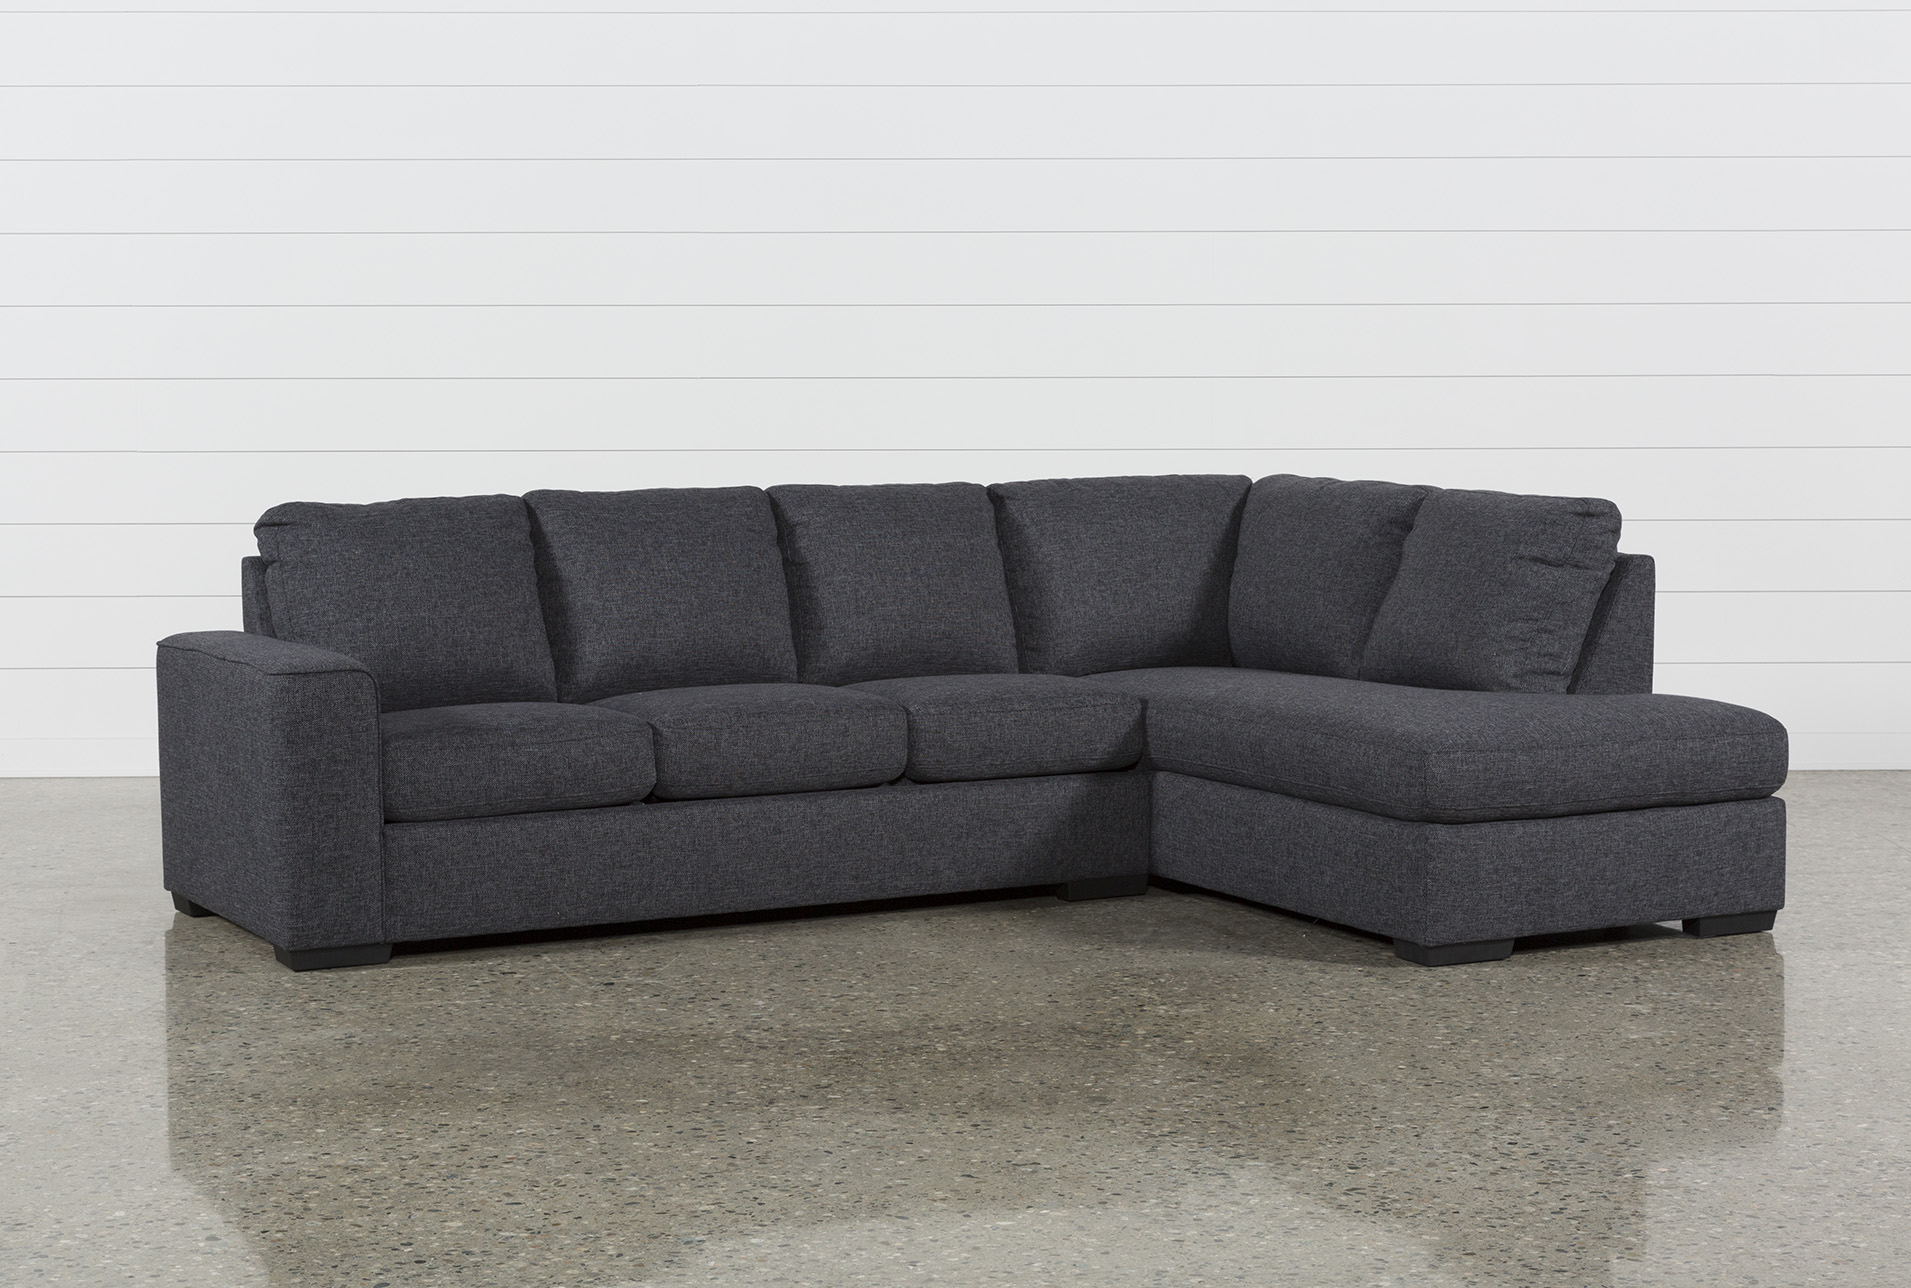 Attractive Lucy Dark Grey 2 Piece Sectional W/Raf Chaise (Qty: 1) Has Been  Successfully Added To Your Cart.